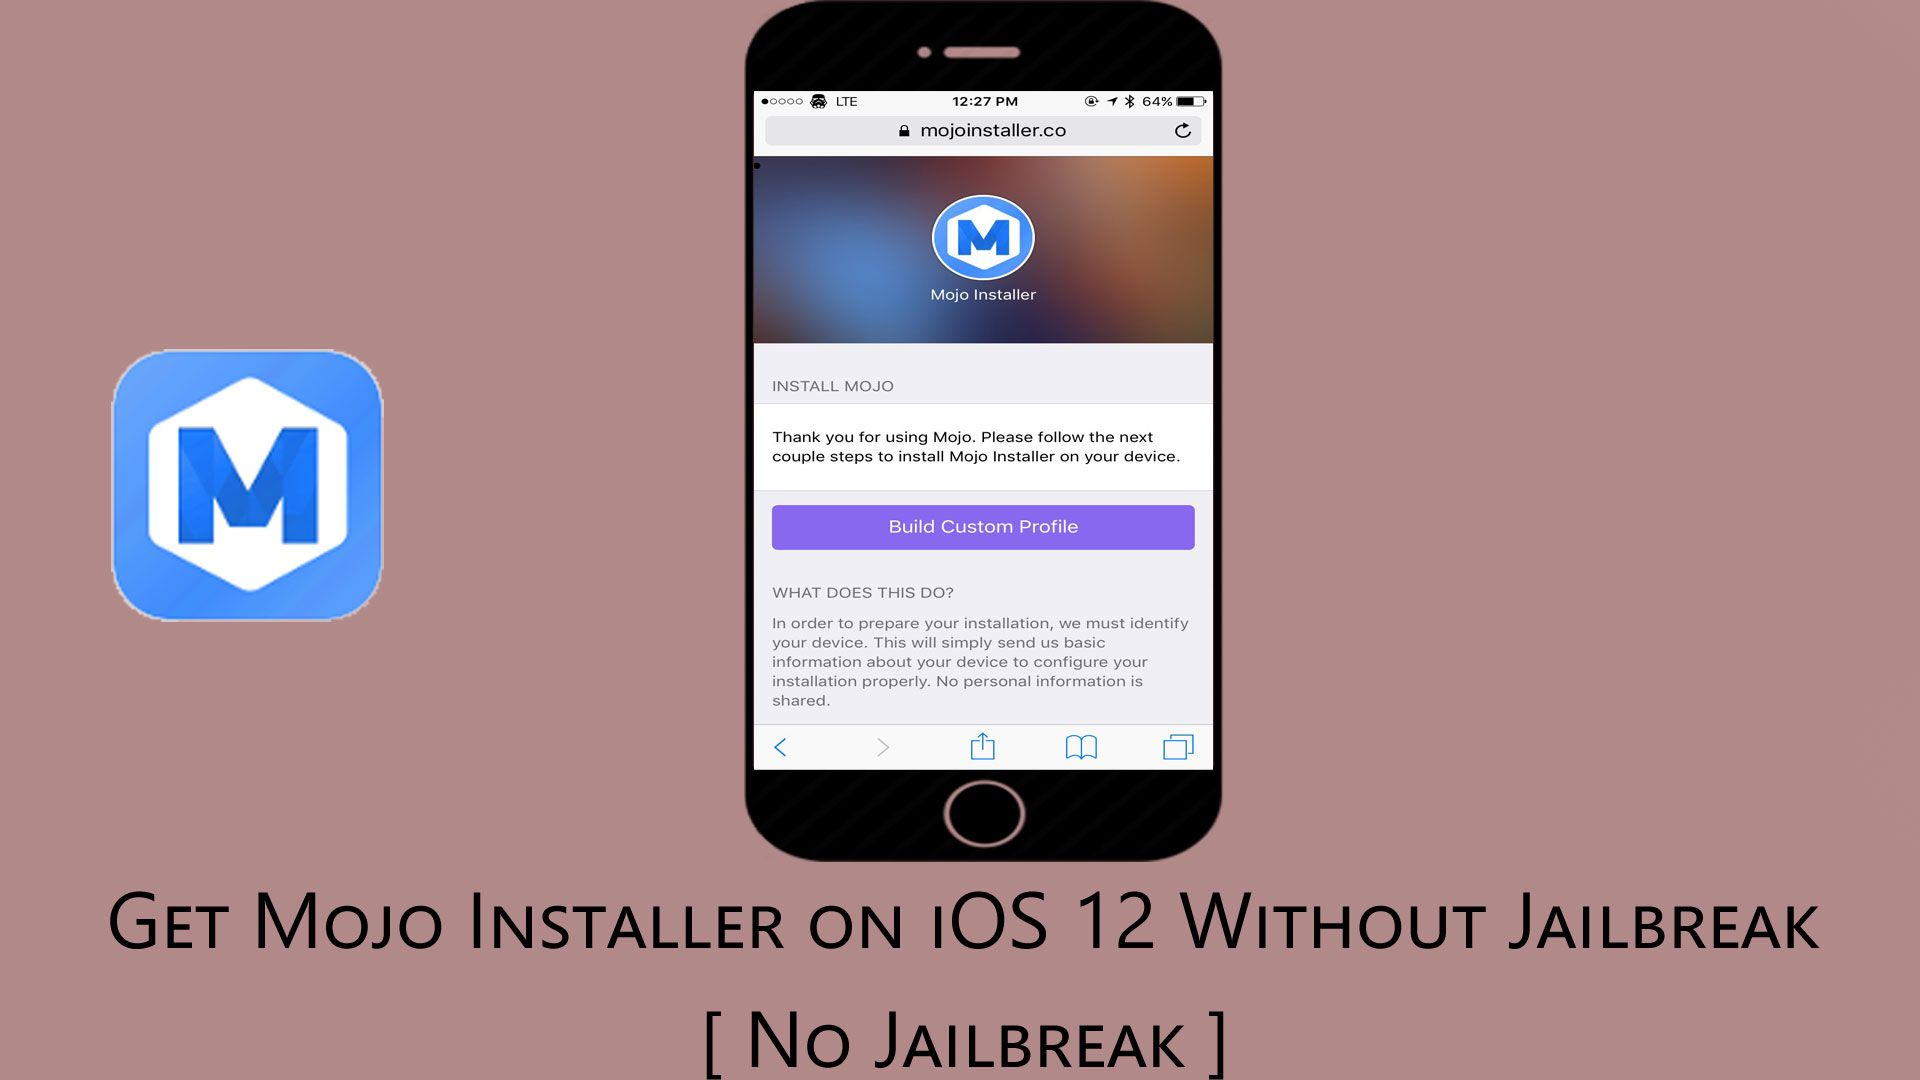 How to get mojo installer on your iOS 12 device without